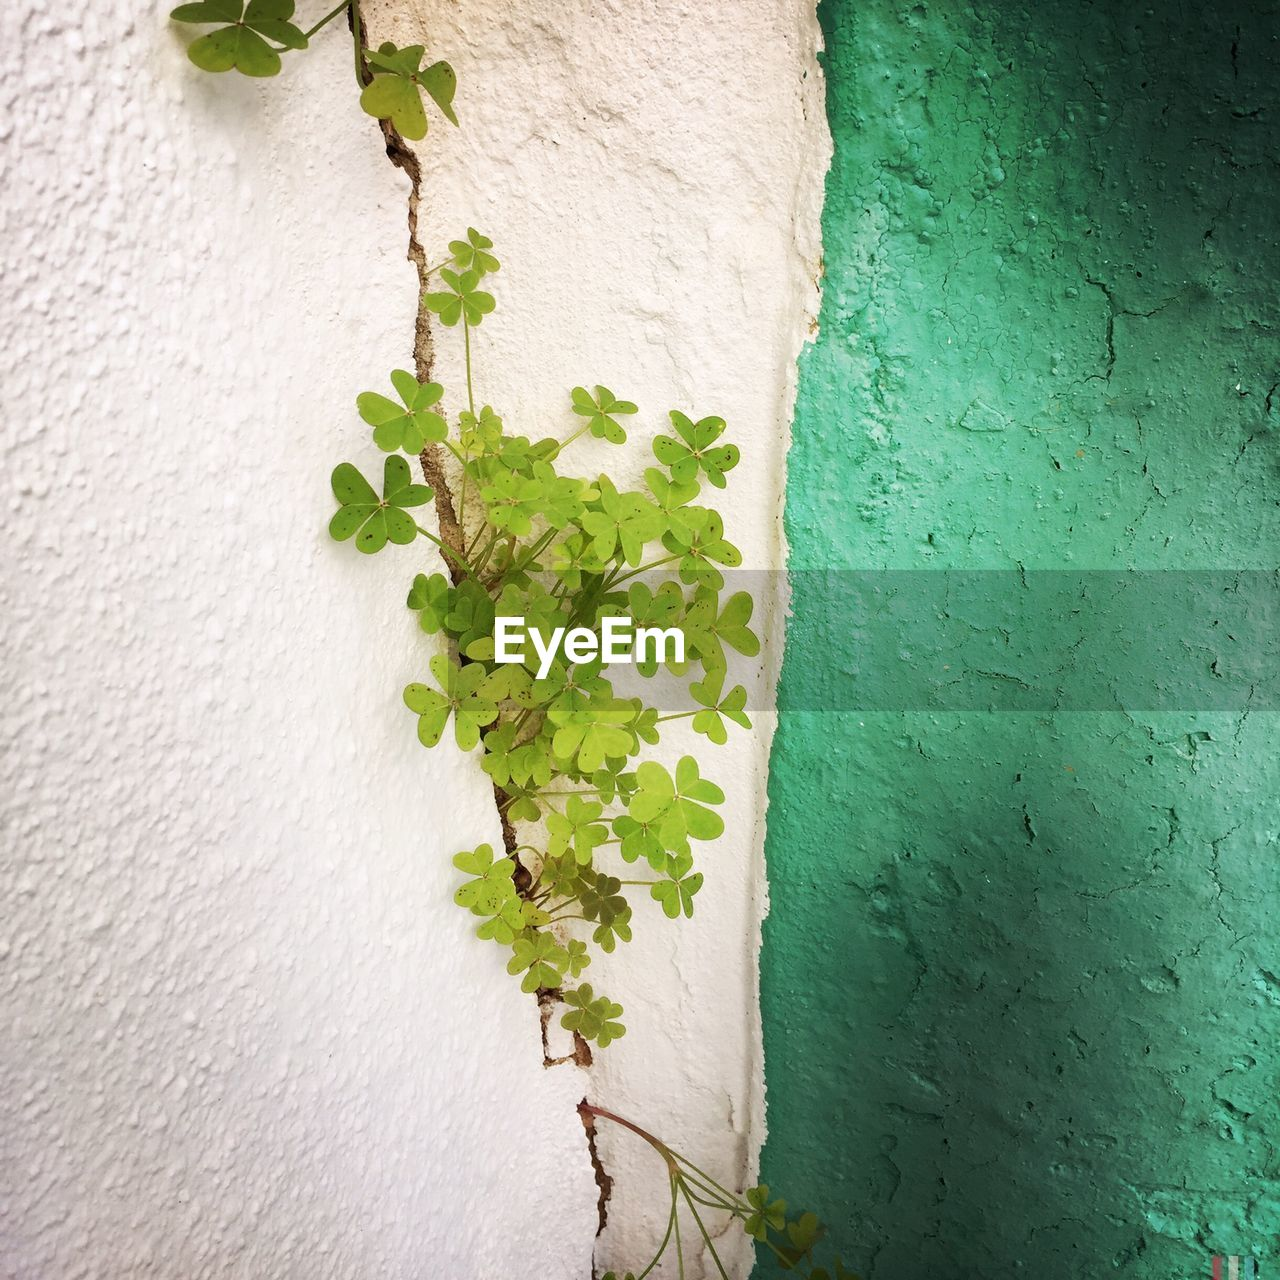 wall - building feature, plant, growth, ivy, leaf, built structure, architecture, nature, outdoors, day, close-up, no people, creeper plant, green color, building exterior, textured, whitewashed, freshness